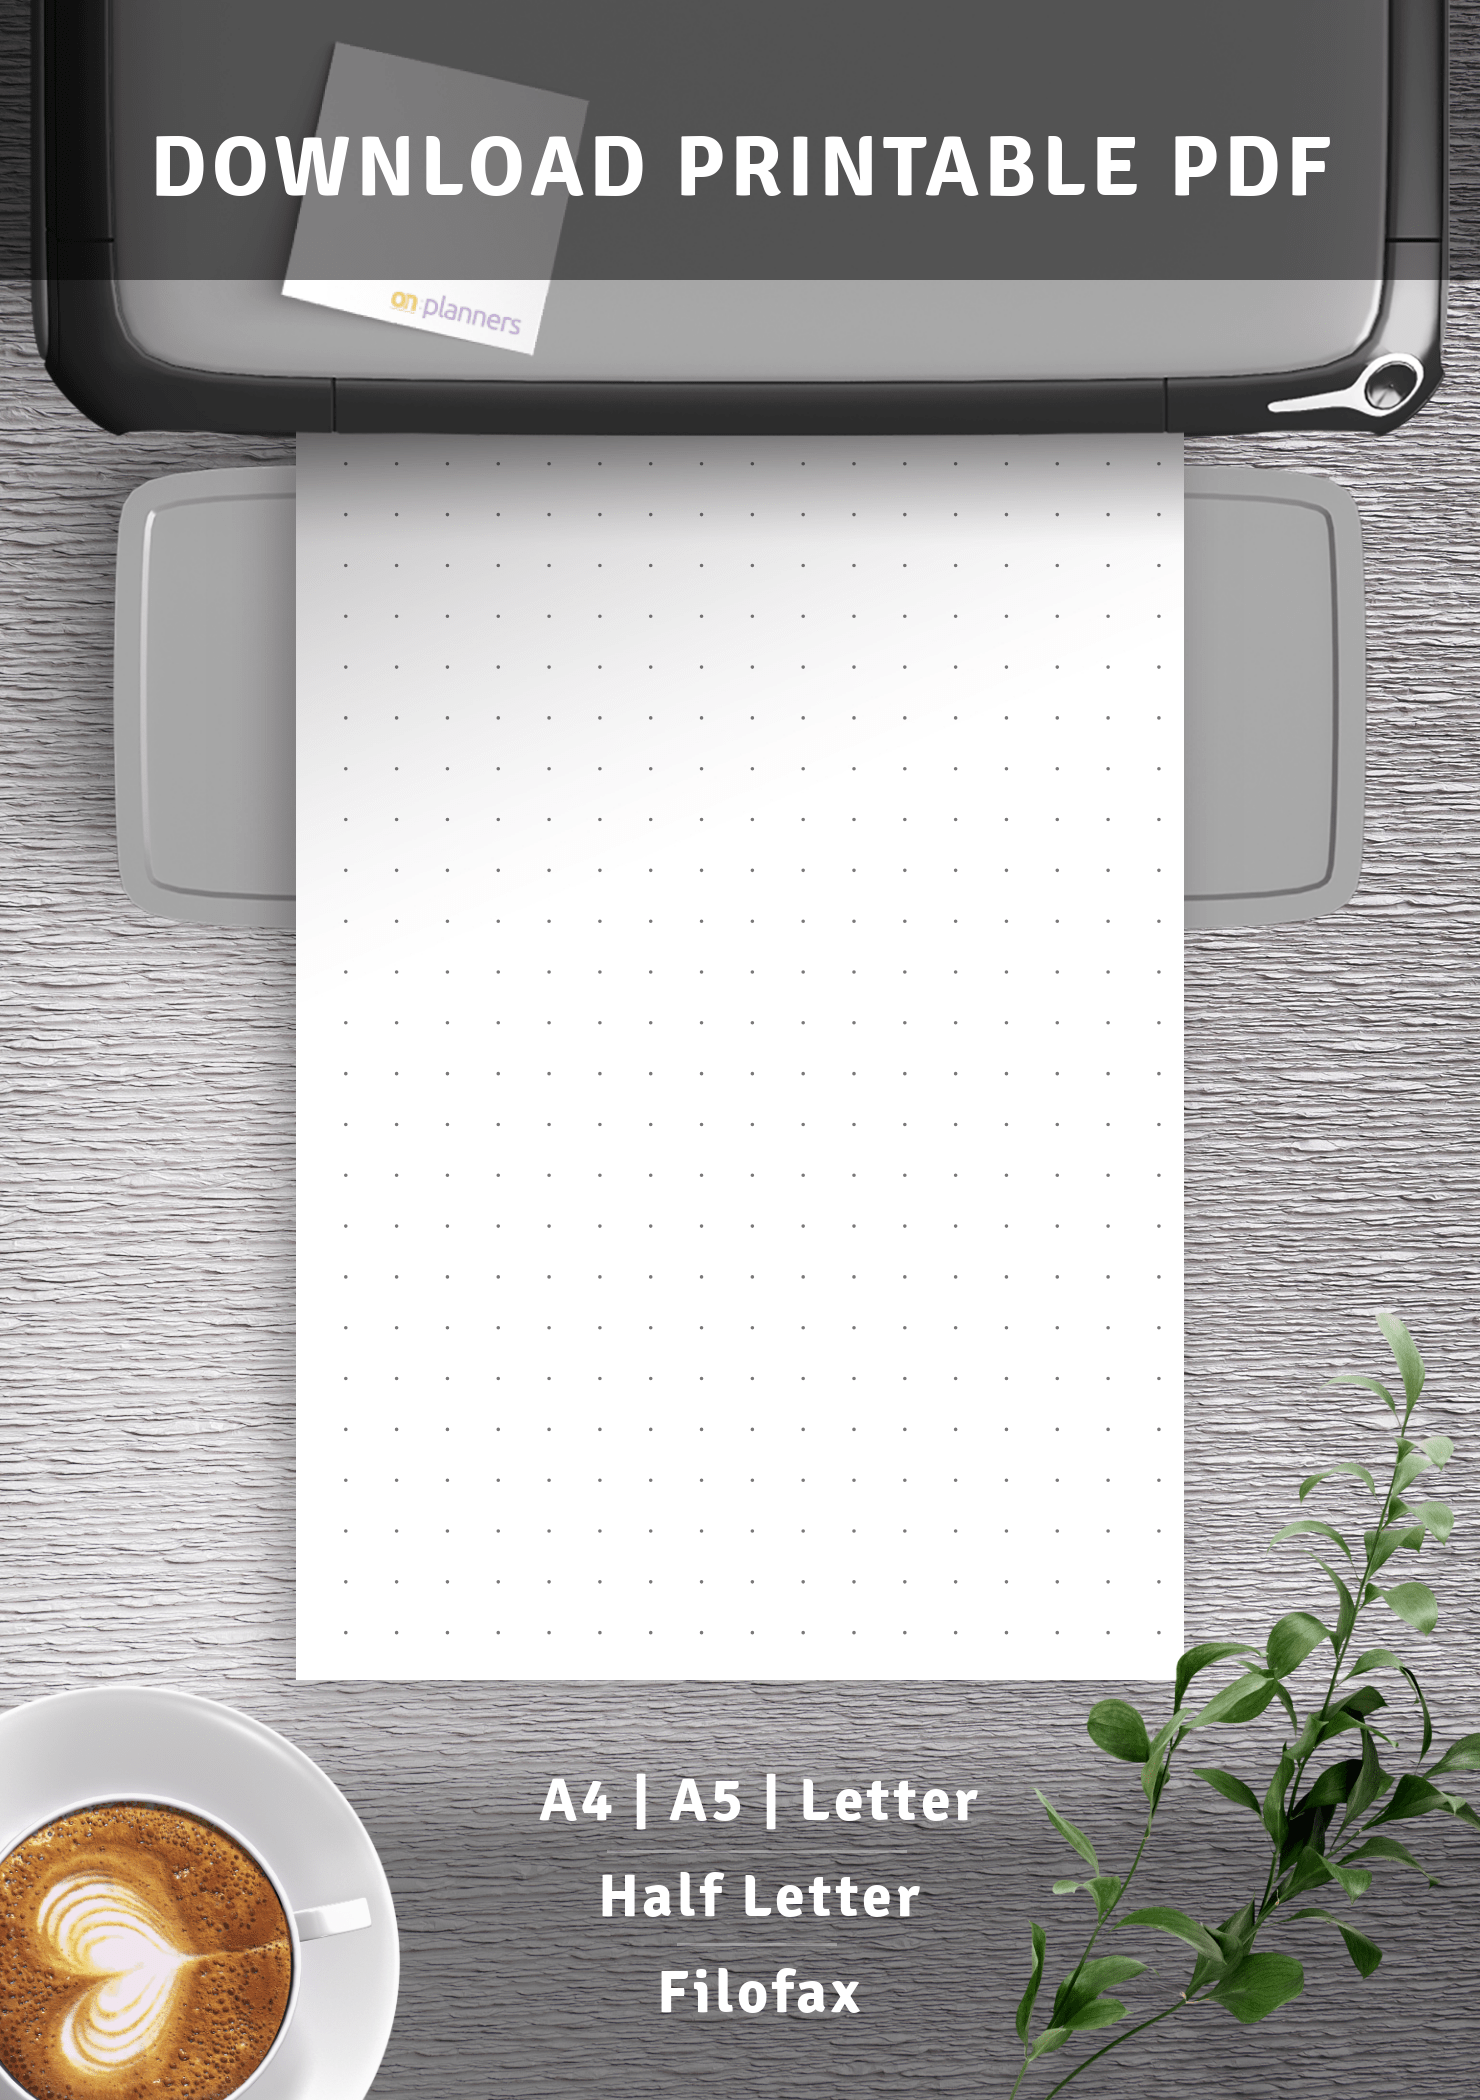 Download Printable Dot Grid Paper With 3 Dots Per Inch